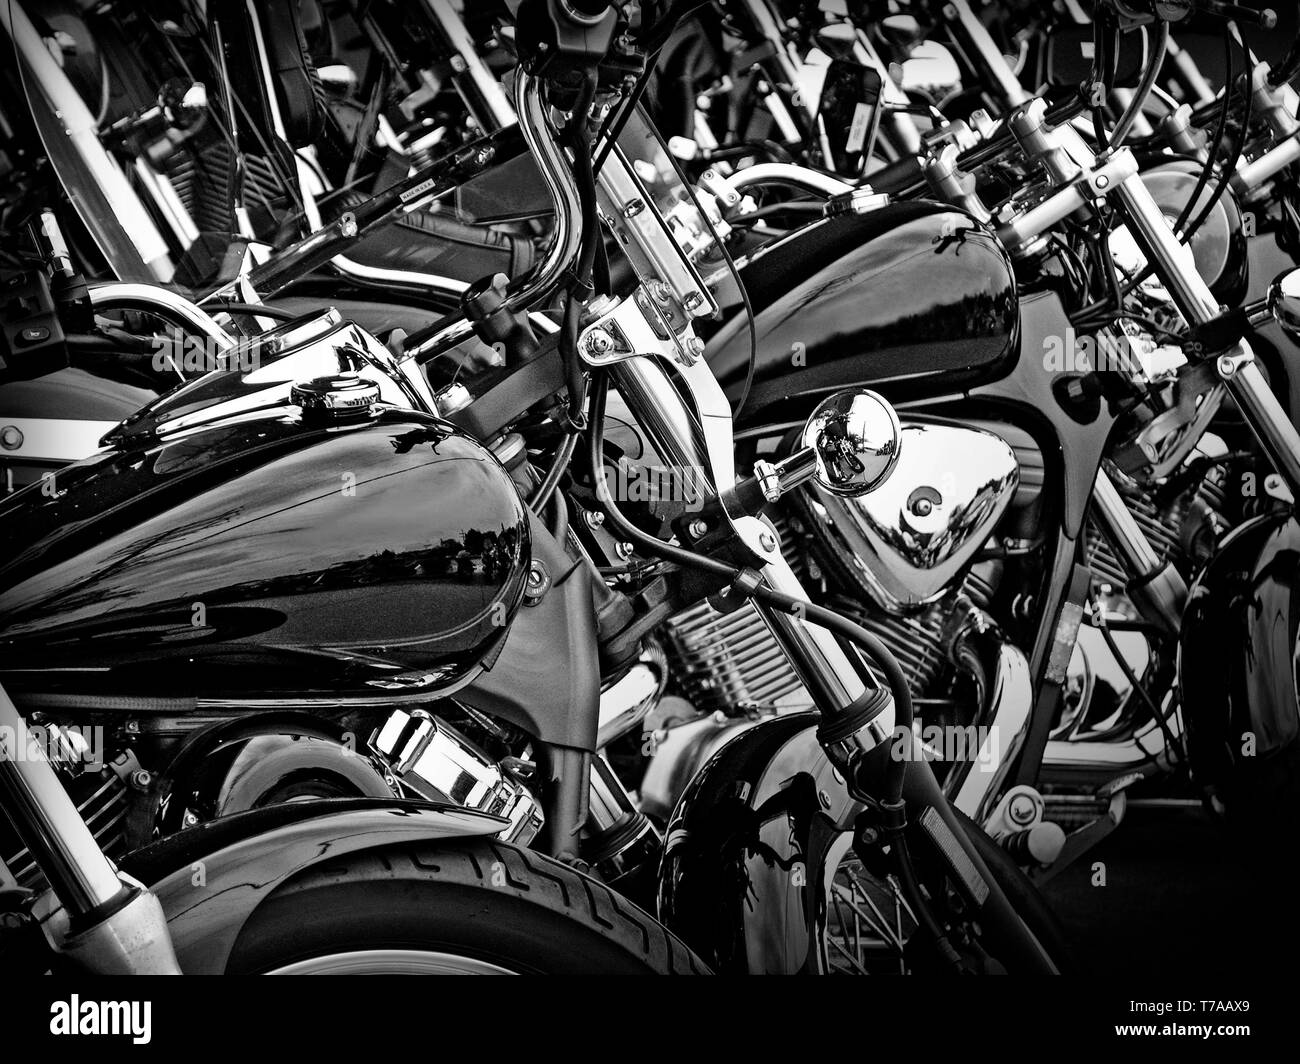 Black and white photograph of similar style motorcycles parked side by side. - Stock Image